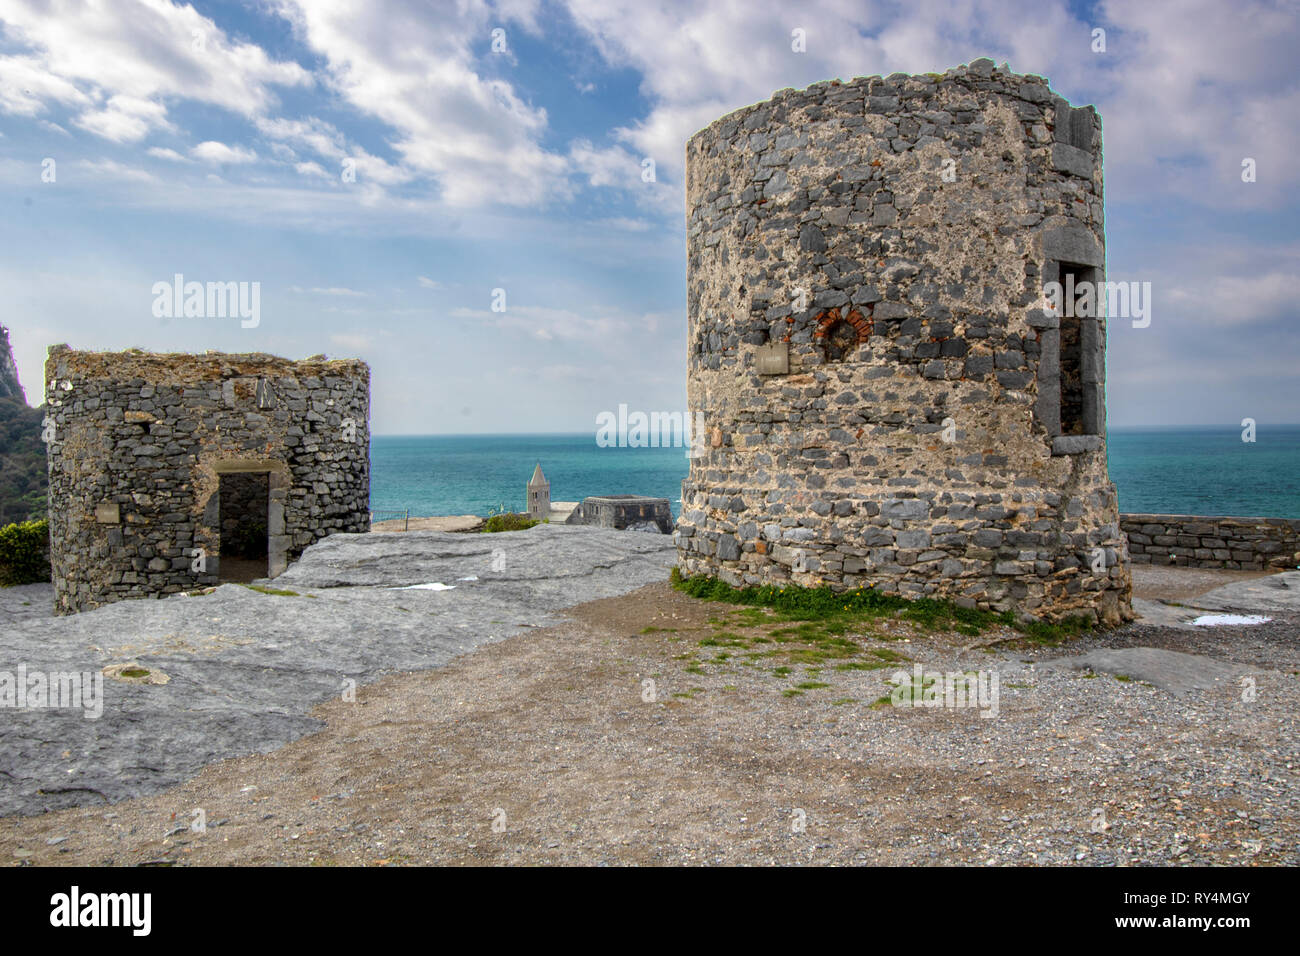 Two ancient mills on the hill of Porto Venere, Liguria, Italy - Stock Image